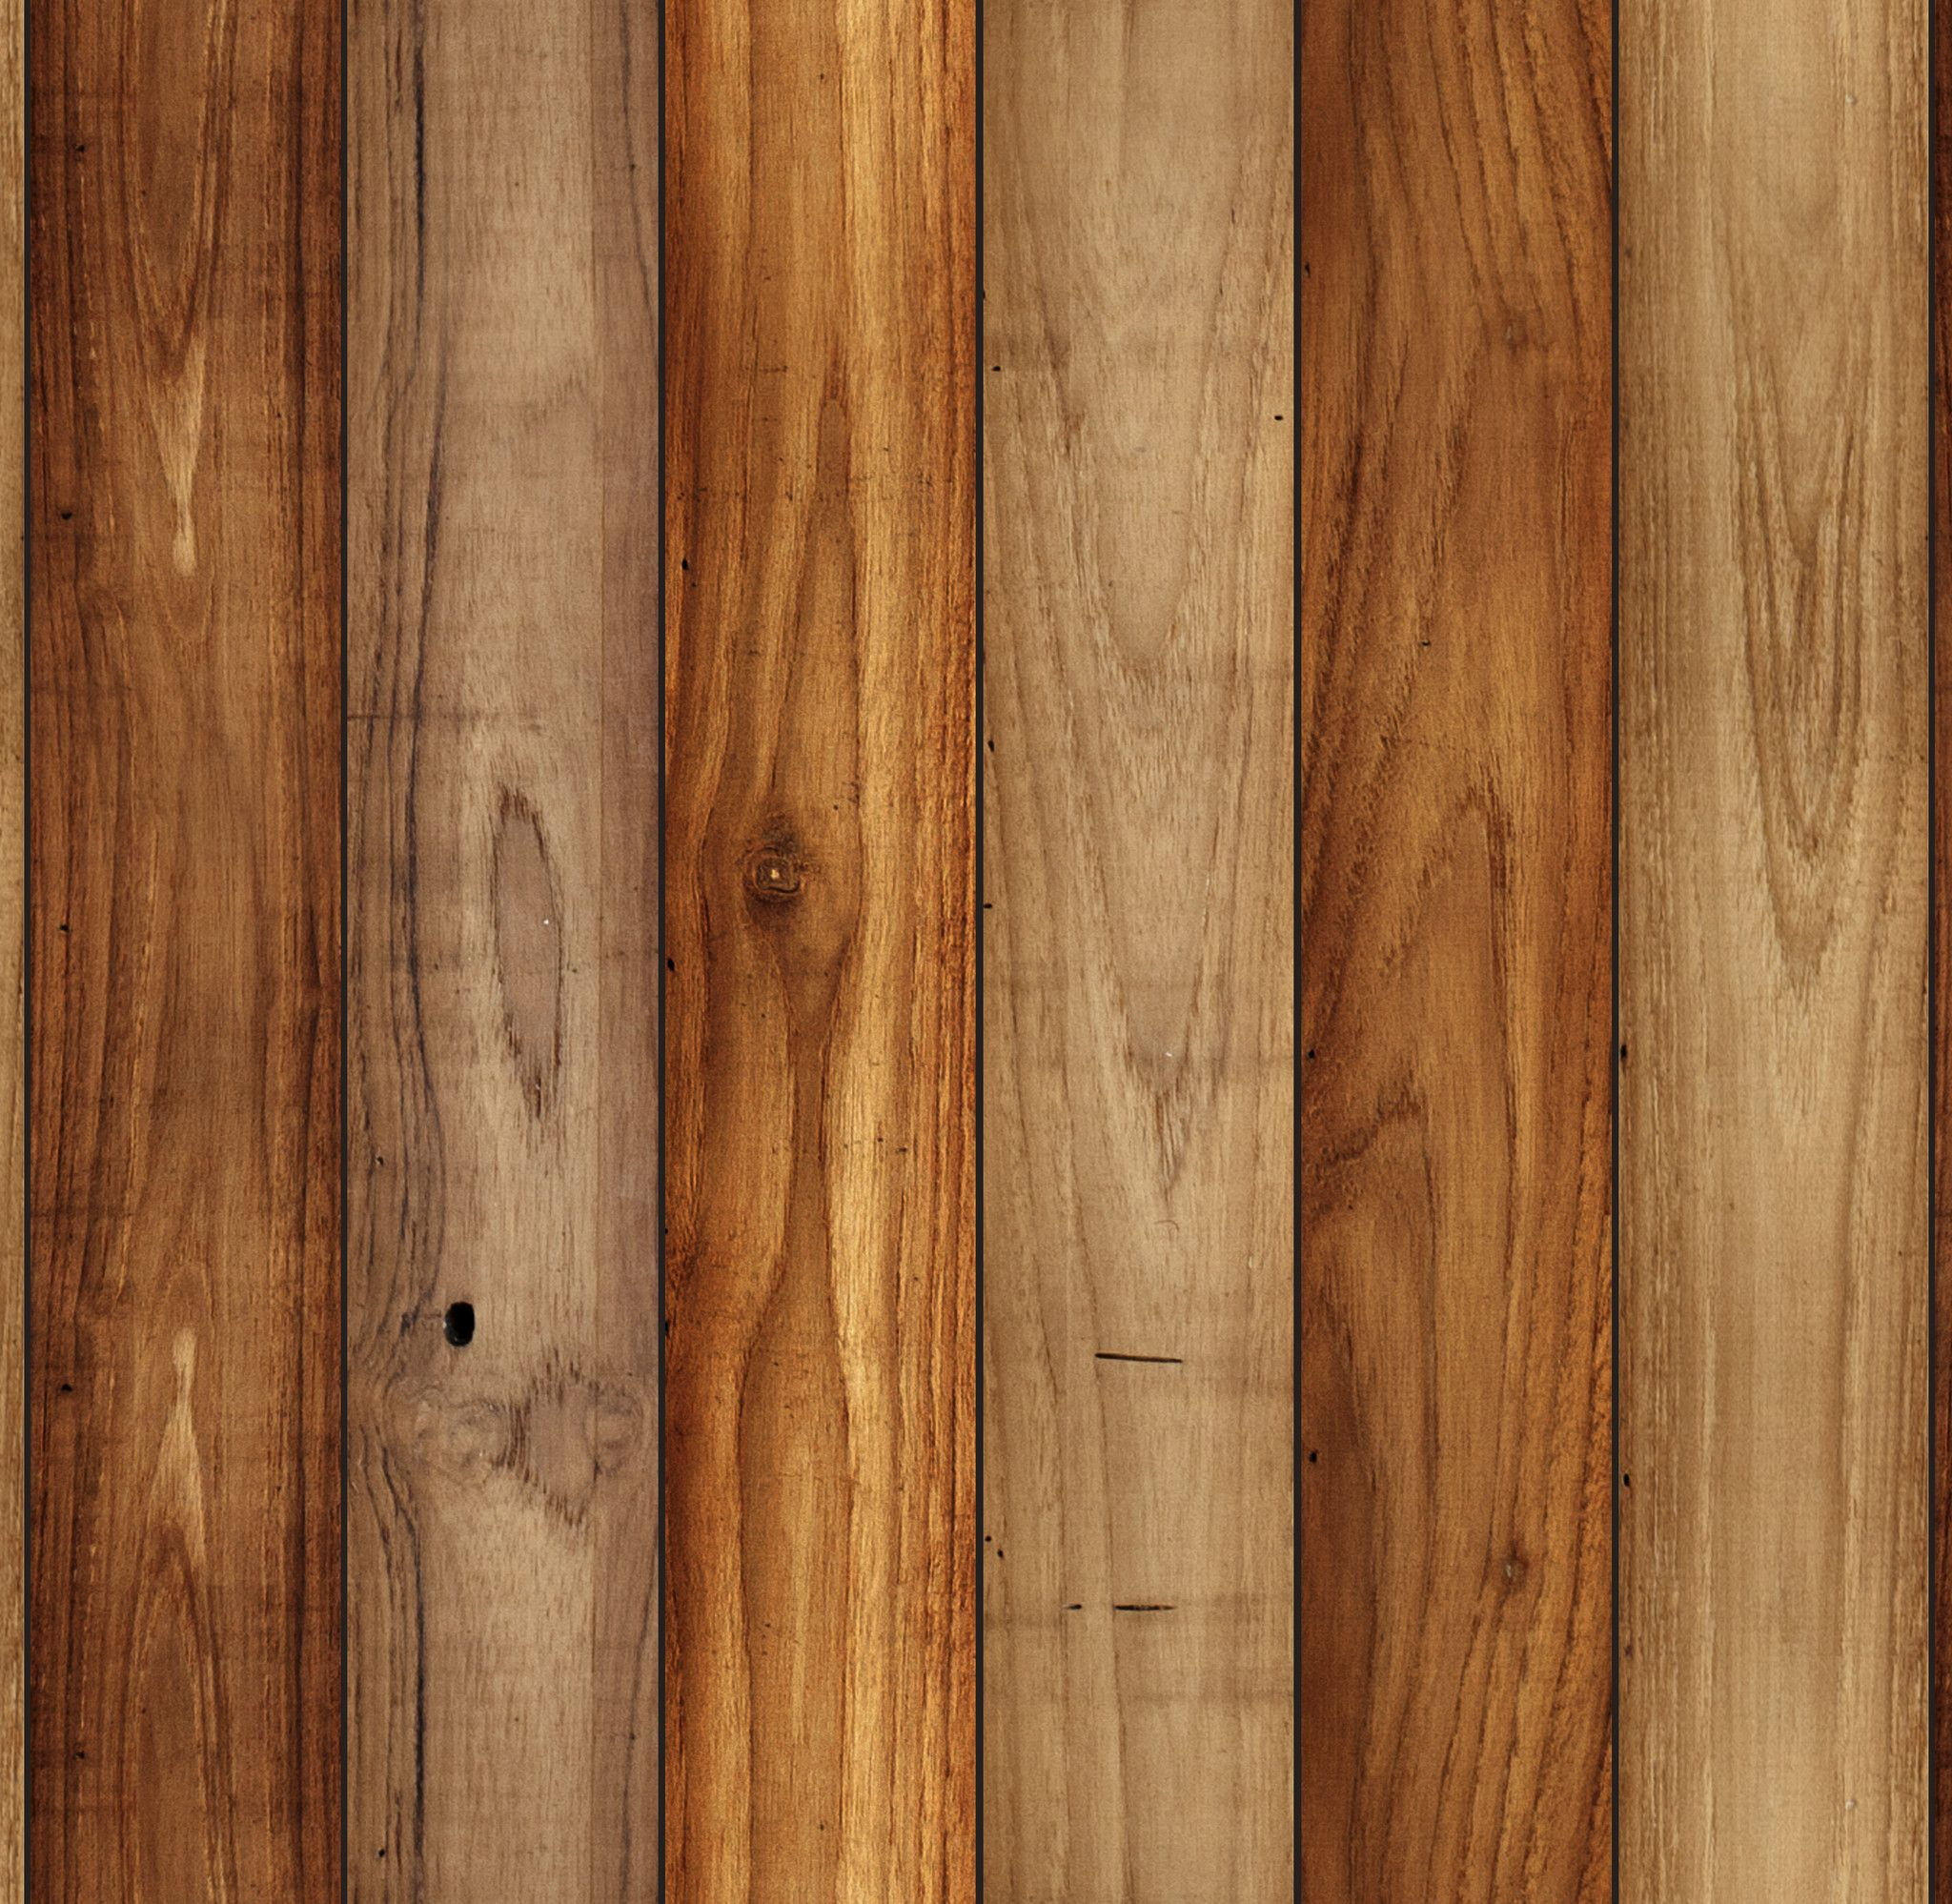 Removable Wallpaper - Wood Panel | Wallpaper, Woods and Walls